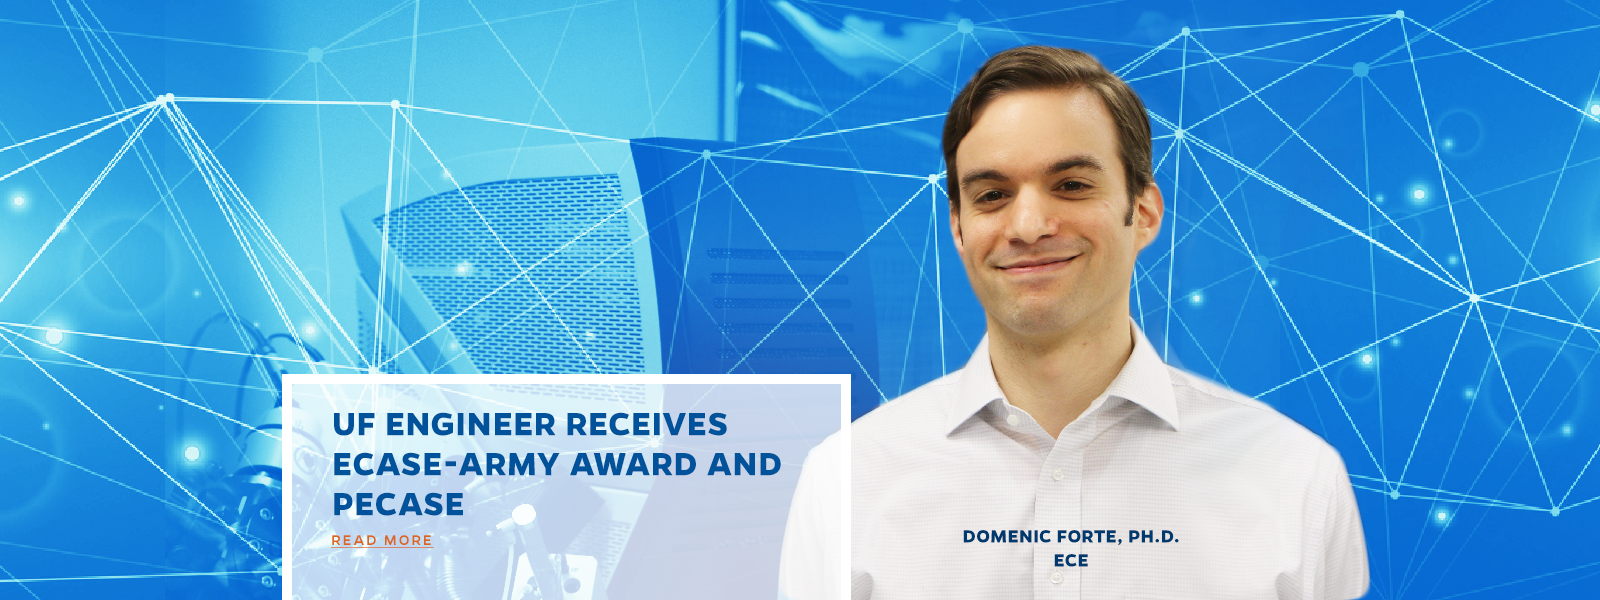 UF ENGINEER RECEIVES ECASE-ARMY AWARD and  pecase